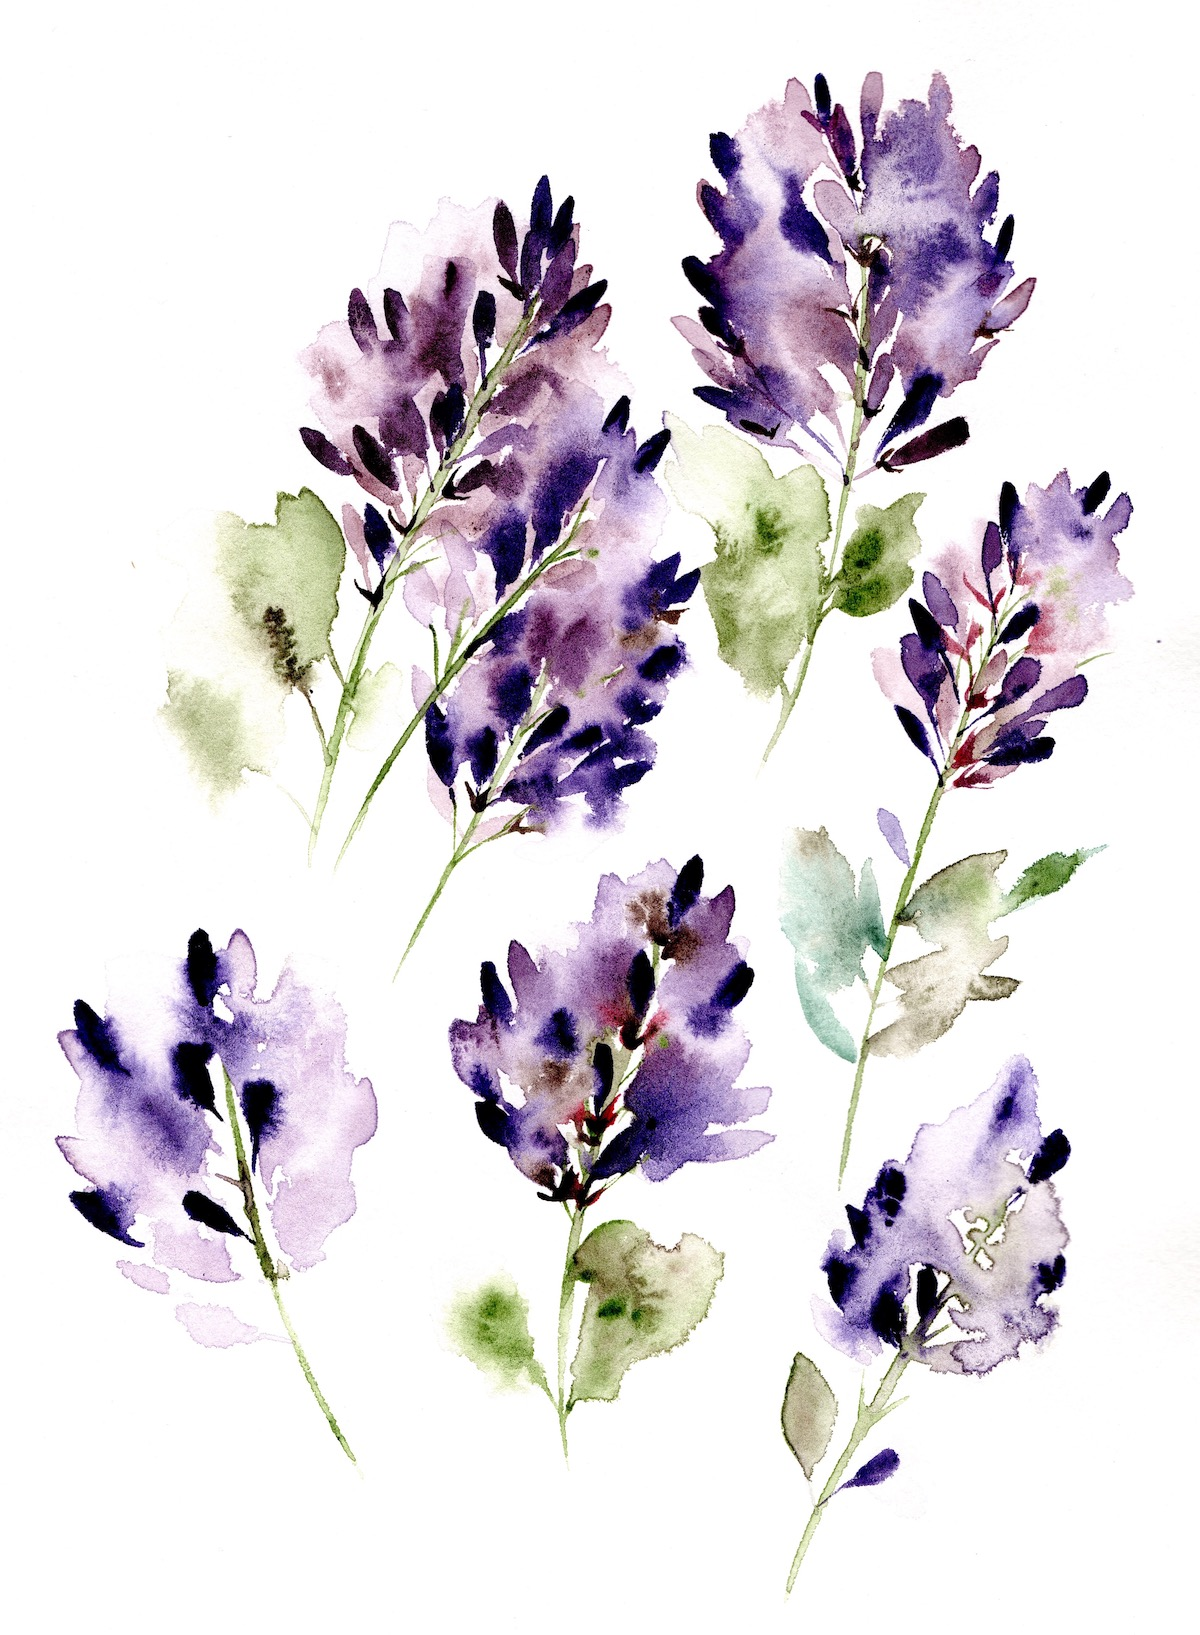 Llilac flowers watercolour illustration